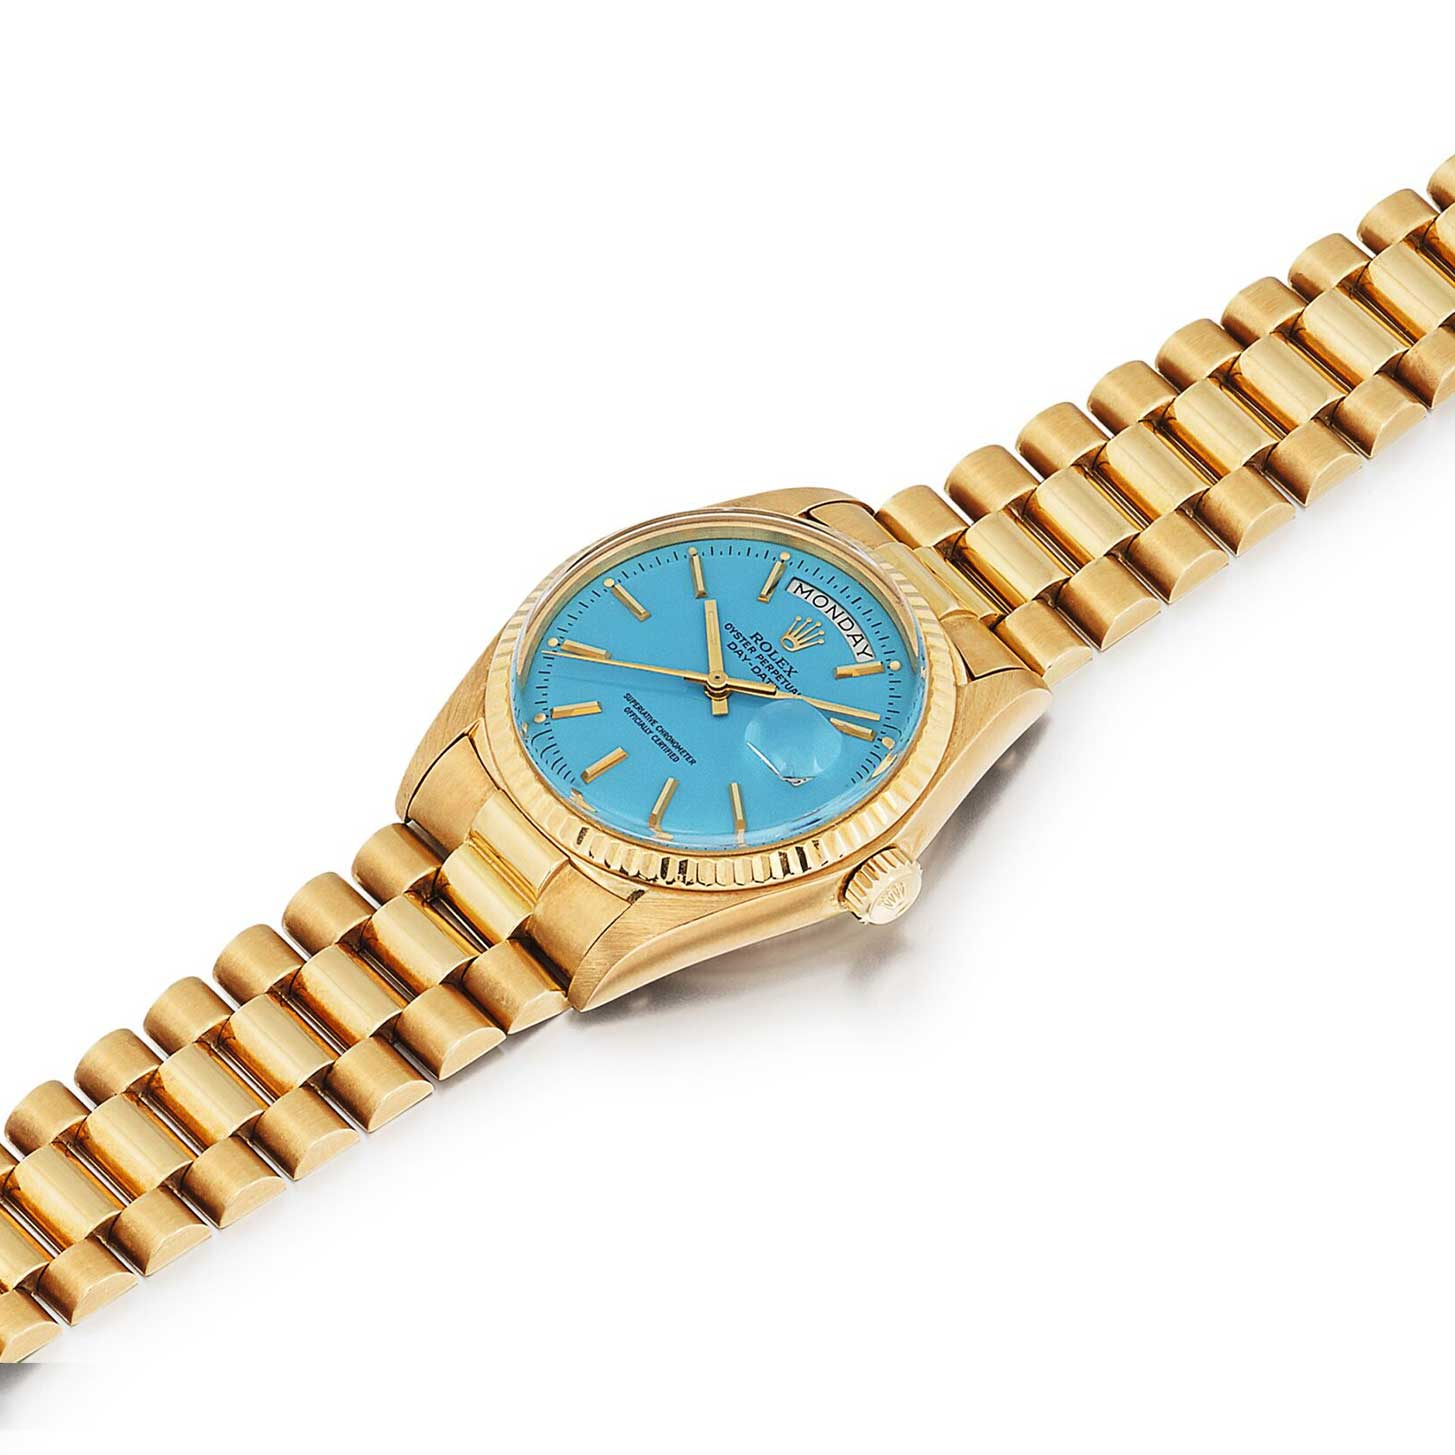 A turquoise dial Stella Day-Date ref. 1803 (Image: sothebys.com)